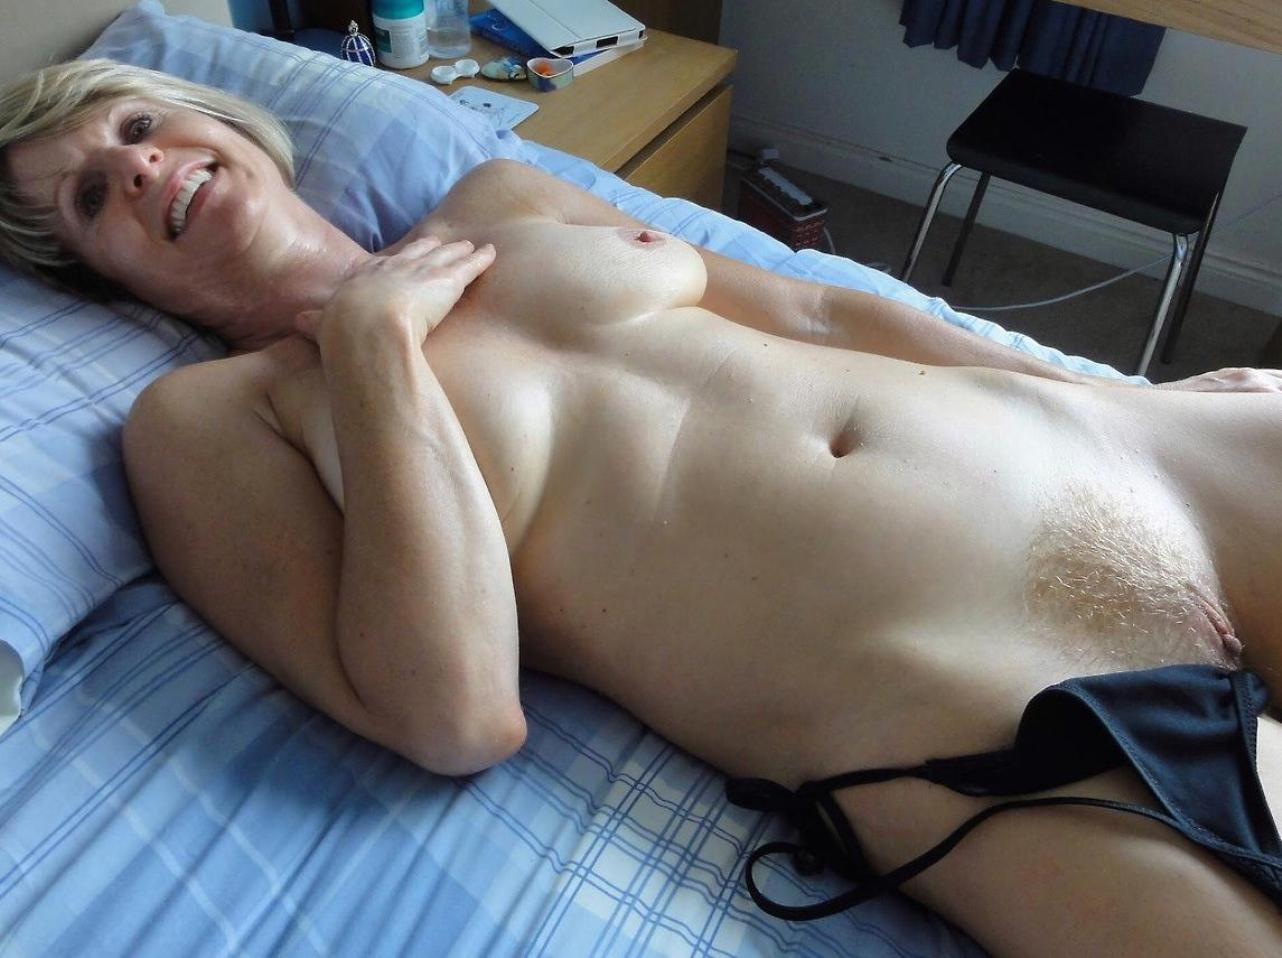 Smailing mature teasing with sexy poses on bed. Blonde MILF real first time nude posed lying on the bed